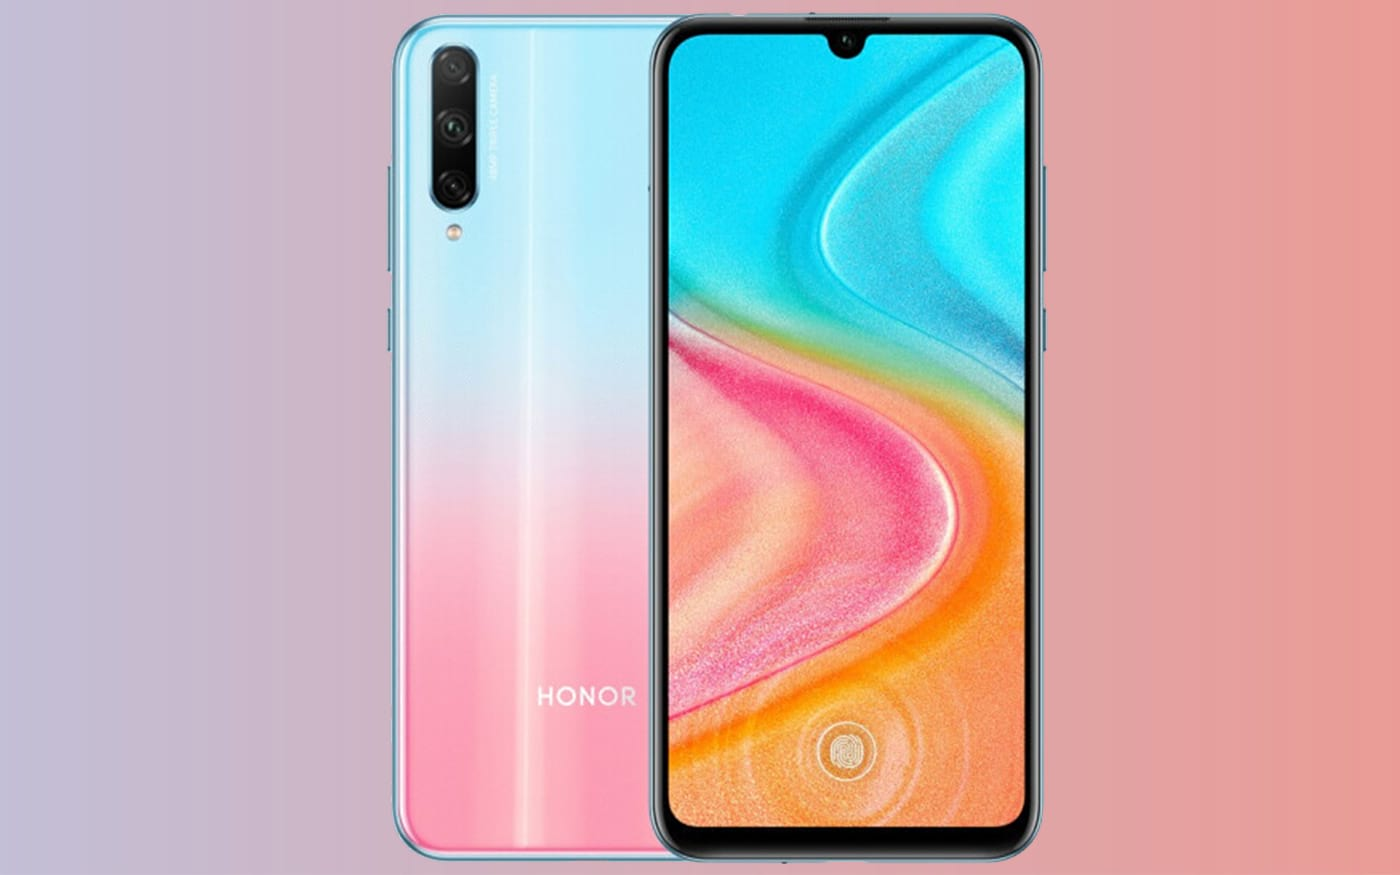 Honor 20 Lite (Youth Edition) chega com câmeras triplas e Kirin 710F